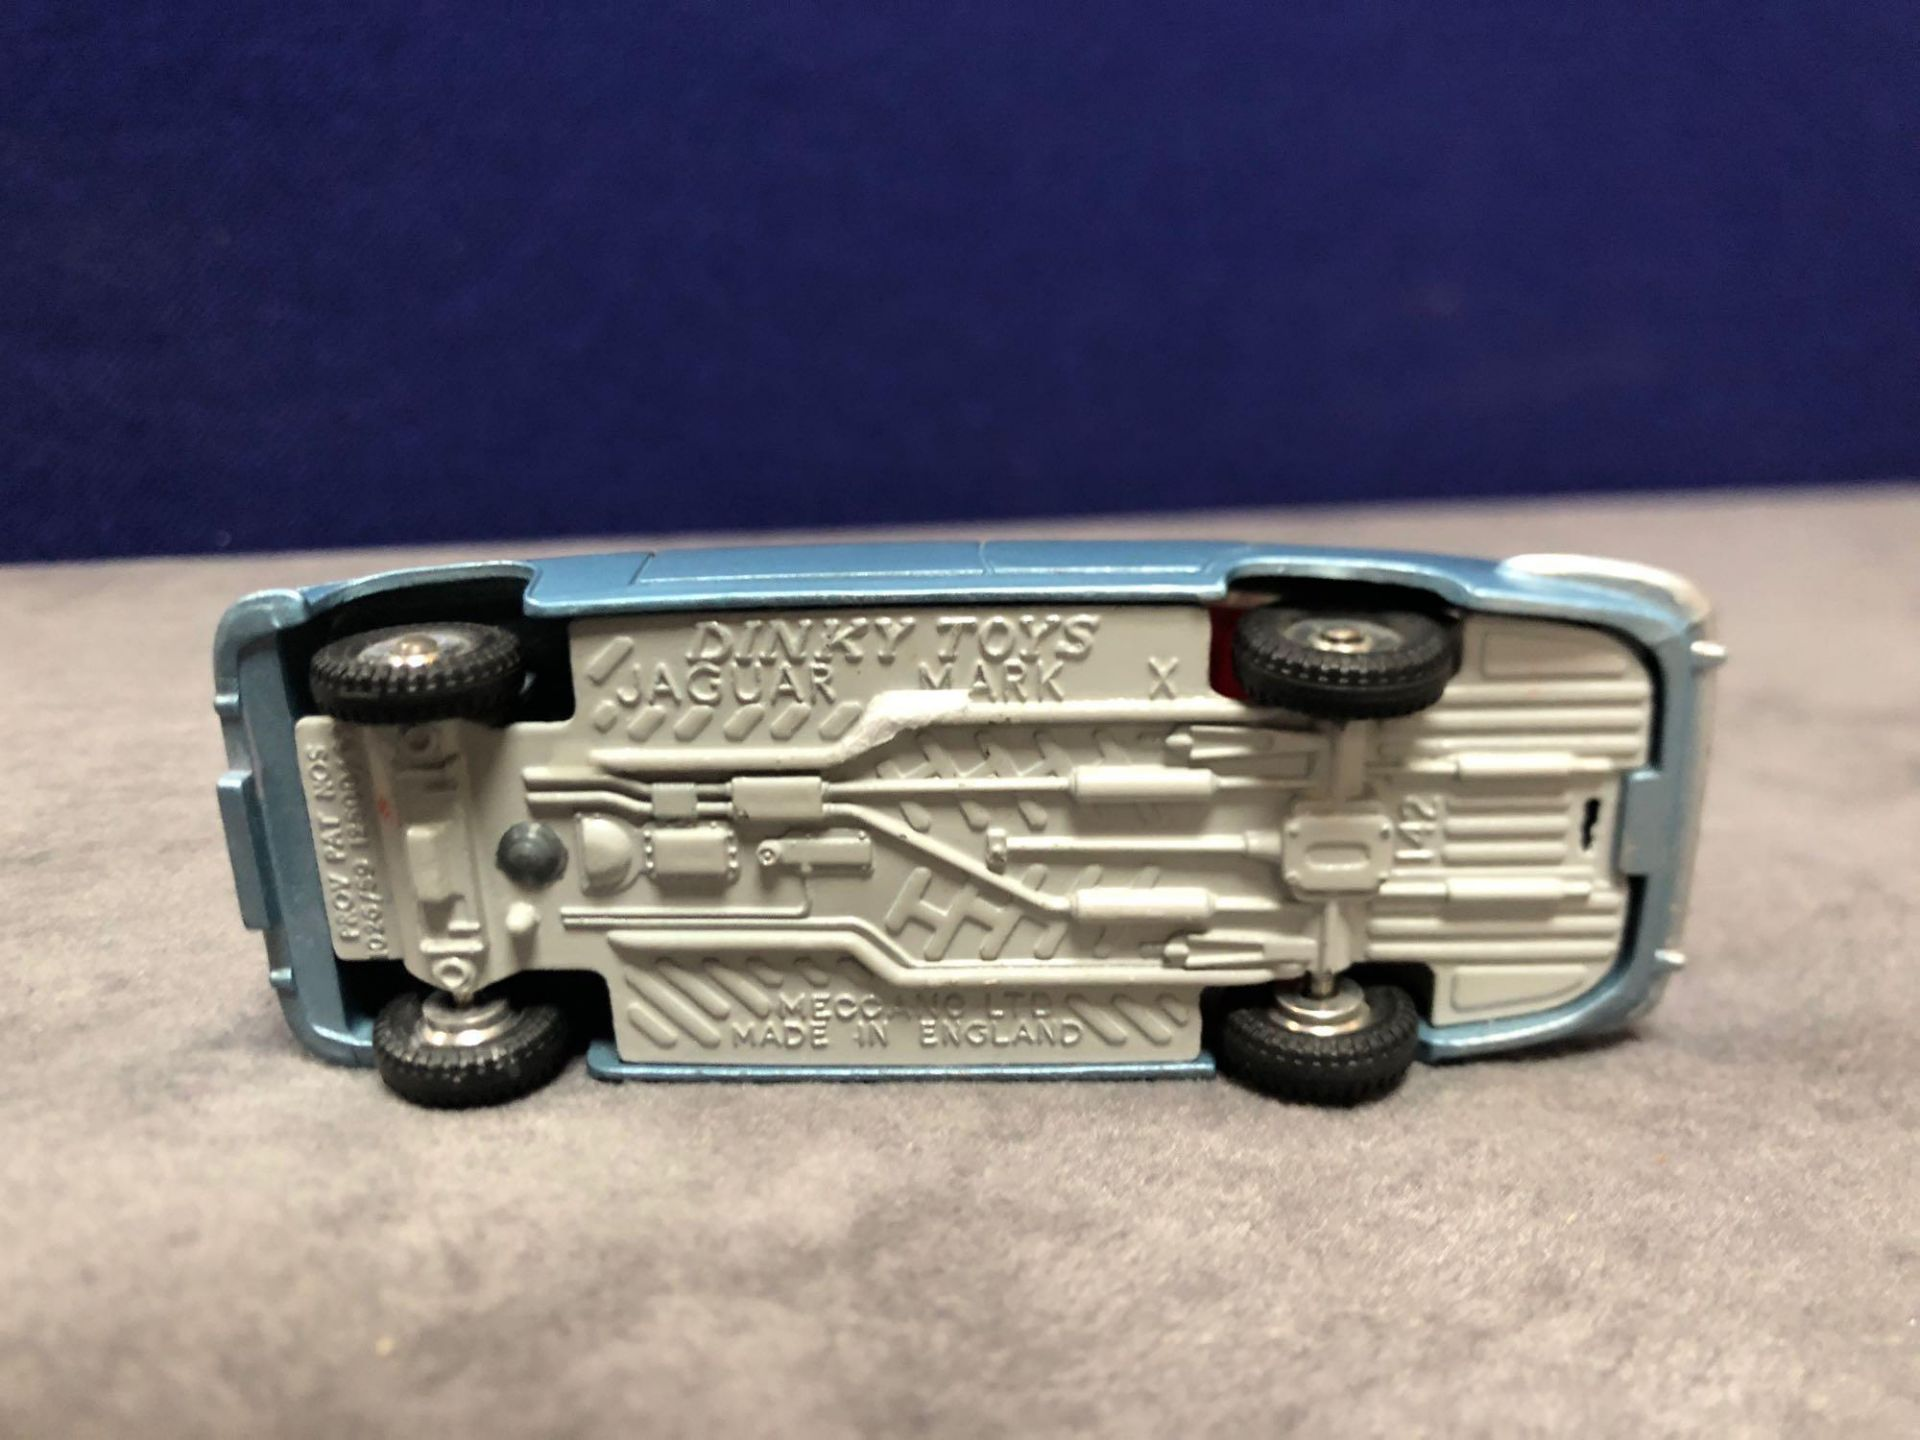 Dinky #142 Jaguar Mark X In Blue With Red Interior 1962-1968 Unboxed Mint Lovely Model - Image 4 of 4